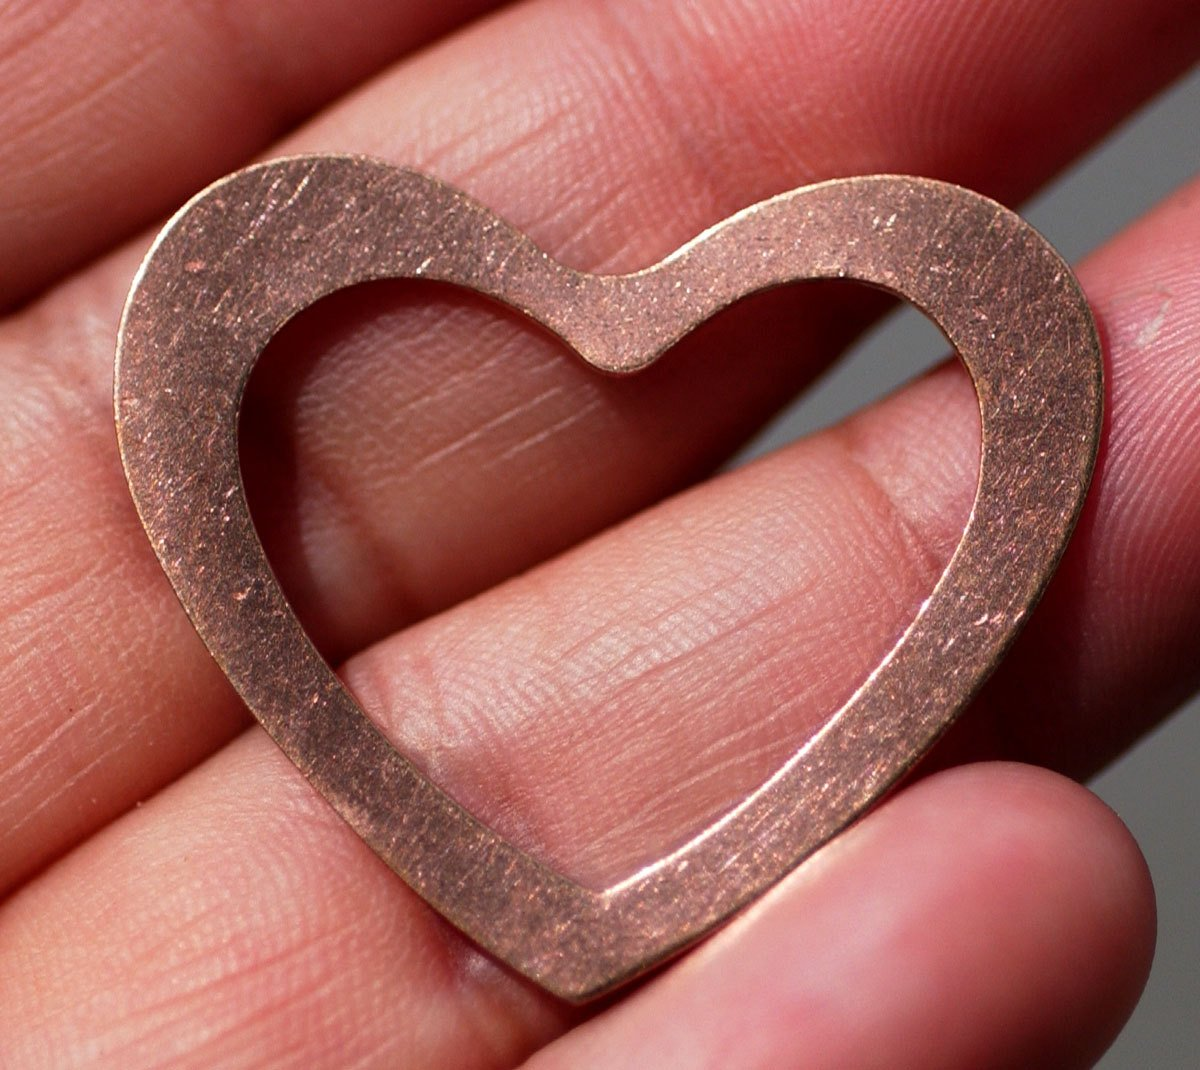 Copper or Nickel Silver Classic Heart in Heart 30mm x 33mm 24g Blank Frame Cutout for  Enameling Stamping Texturing Soldering Blanks